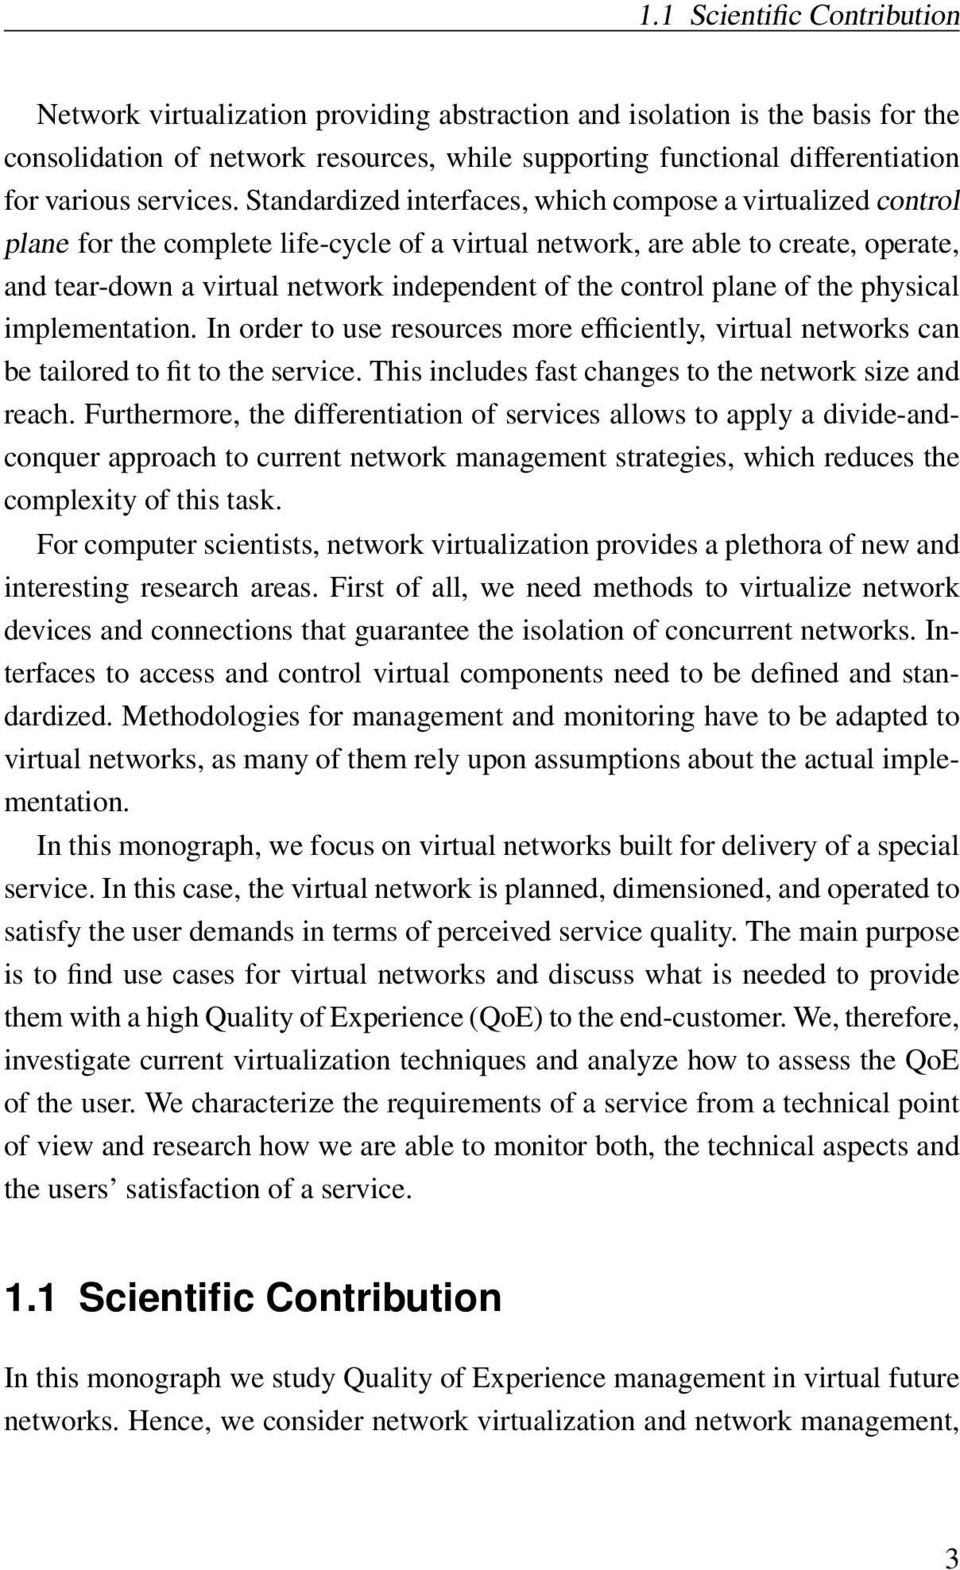 Standardized interfaces, which compose a virtualized control plane for the complete life-cycle of a virtual network, are able to create, operate, and tear-down a virtual network independent of the